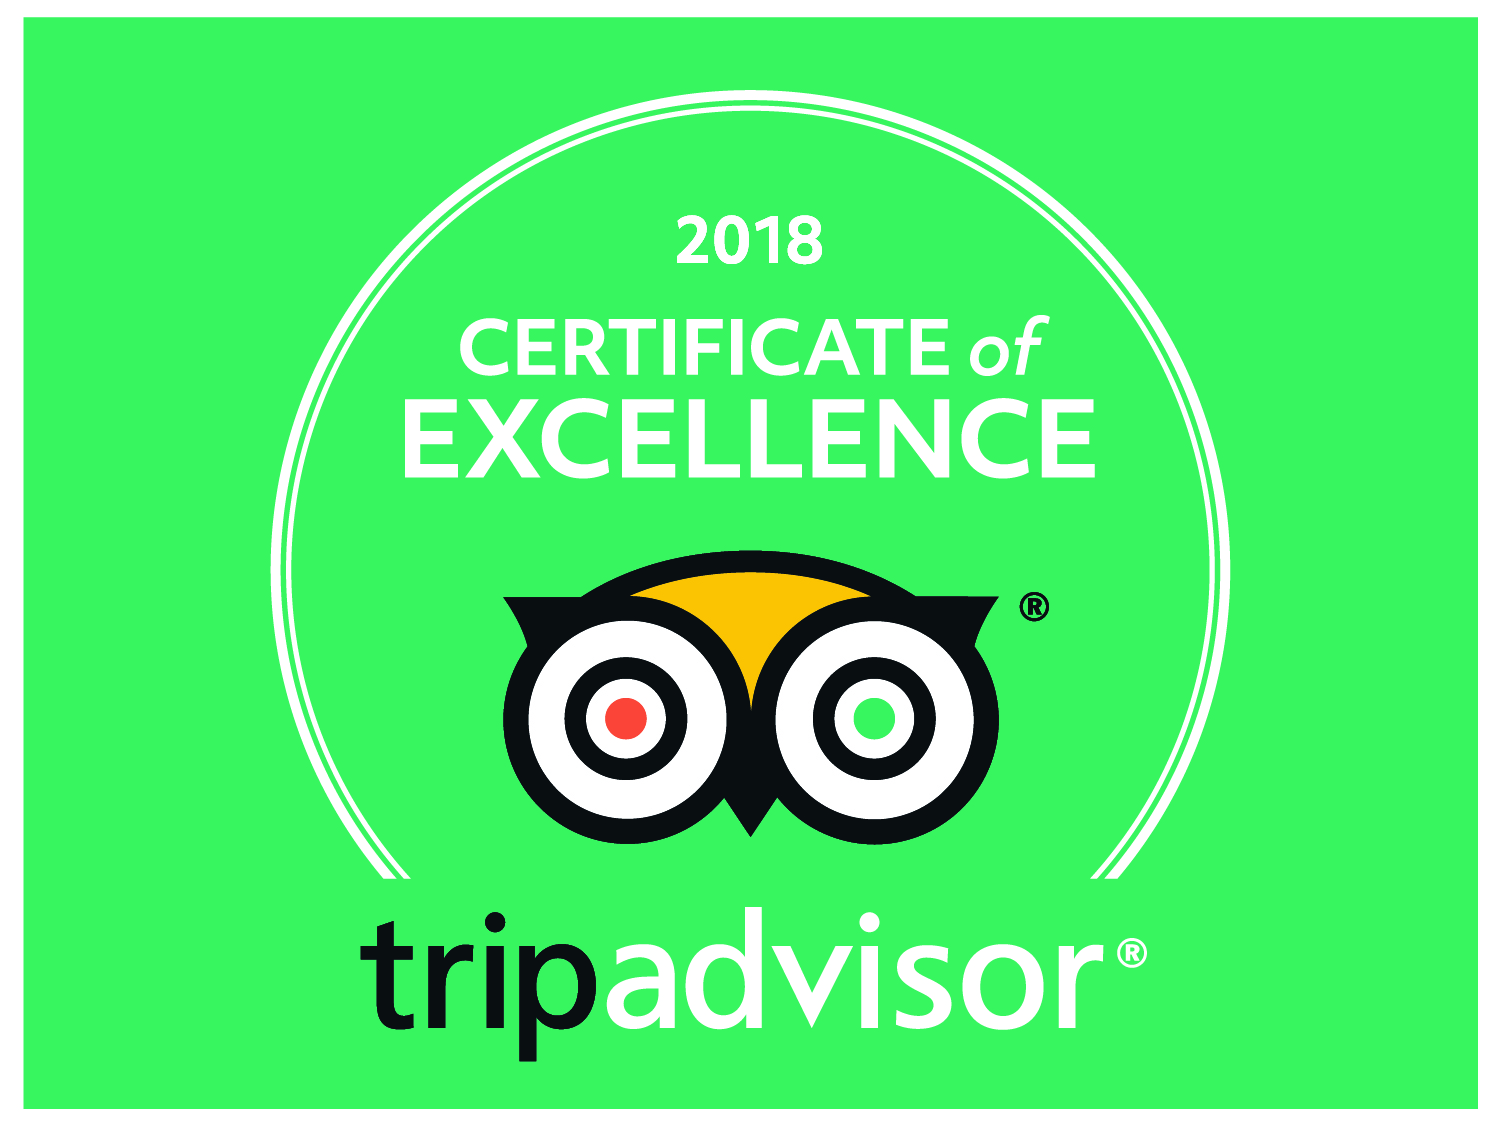 2018 Certificate of Excellence Tripadvisor - Green logo